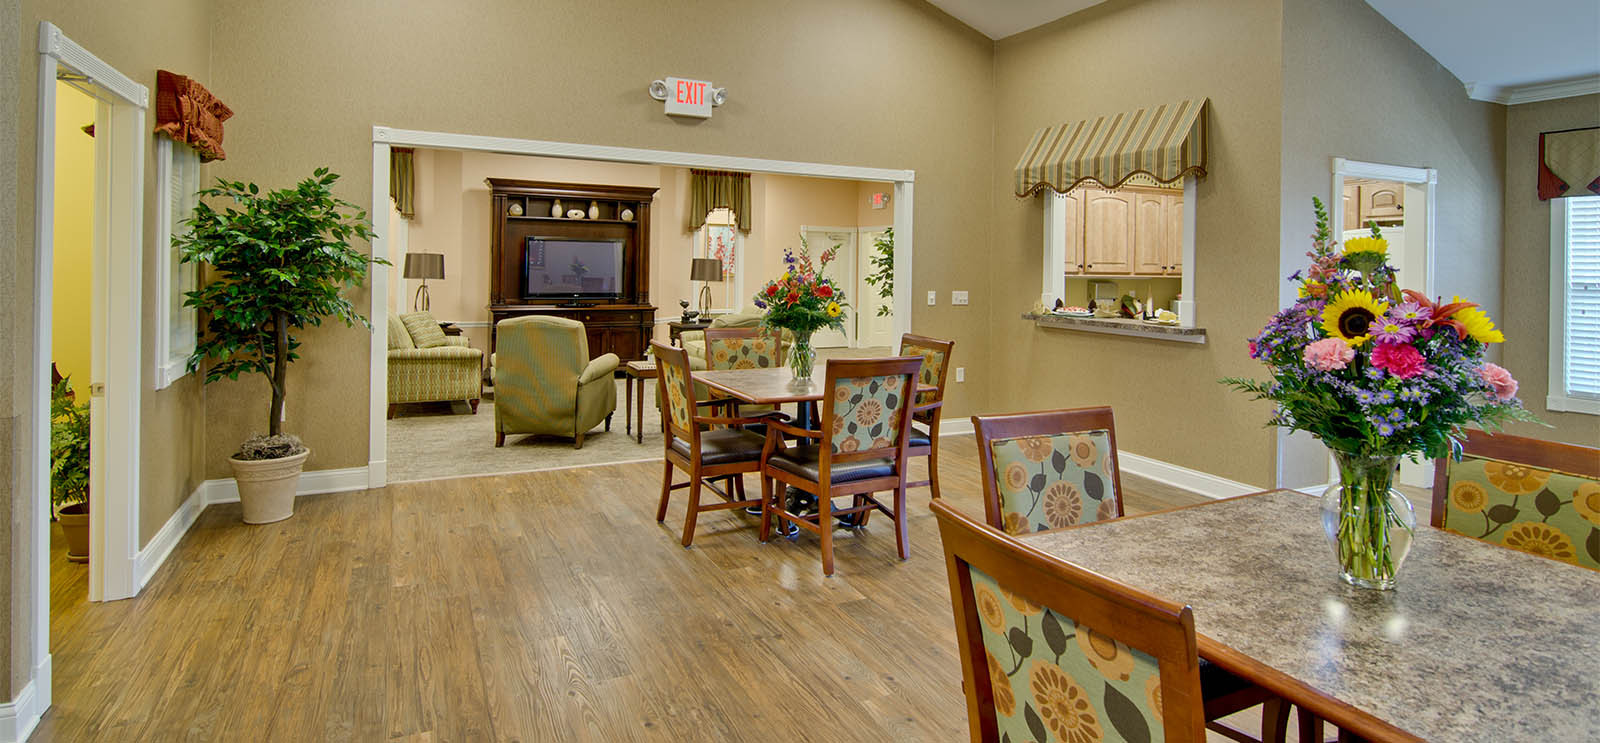 Respite Care & Assisted Living in Fairview Heights, IL | Parkway Gardens